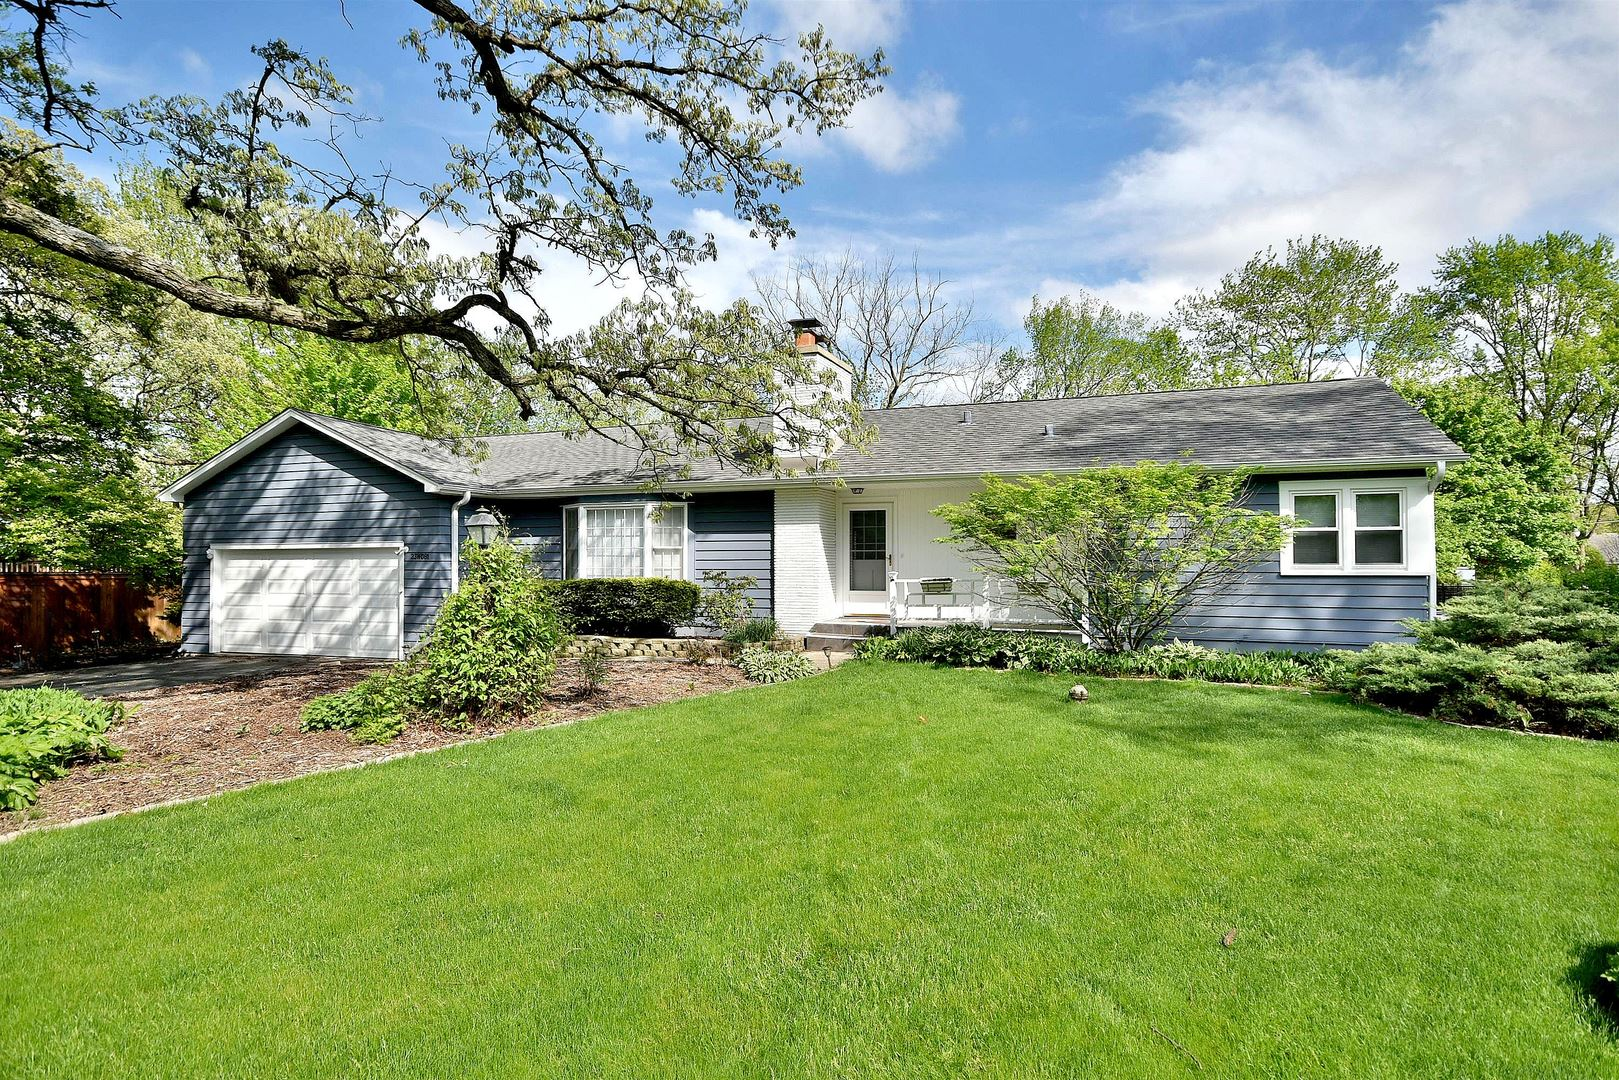 23W081 Blackcherry Lane, Glen Ellyn, IL 60137 - #: 10684069